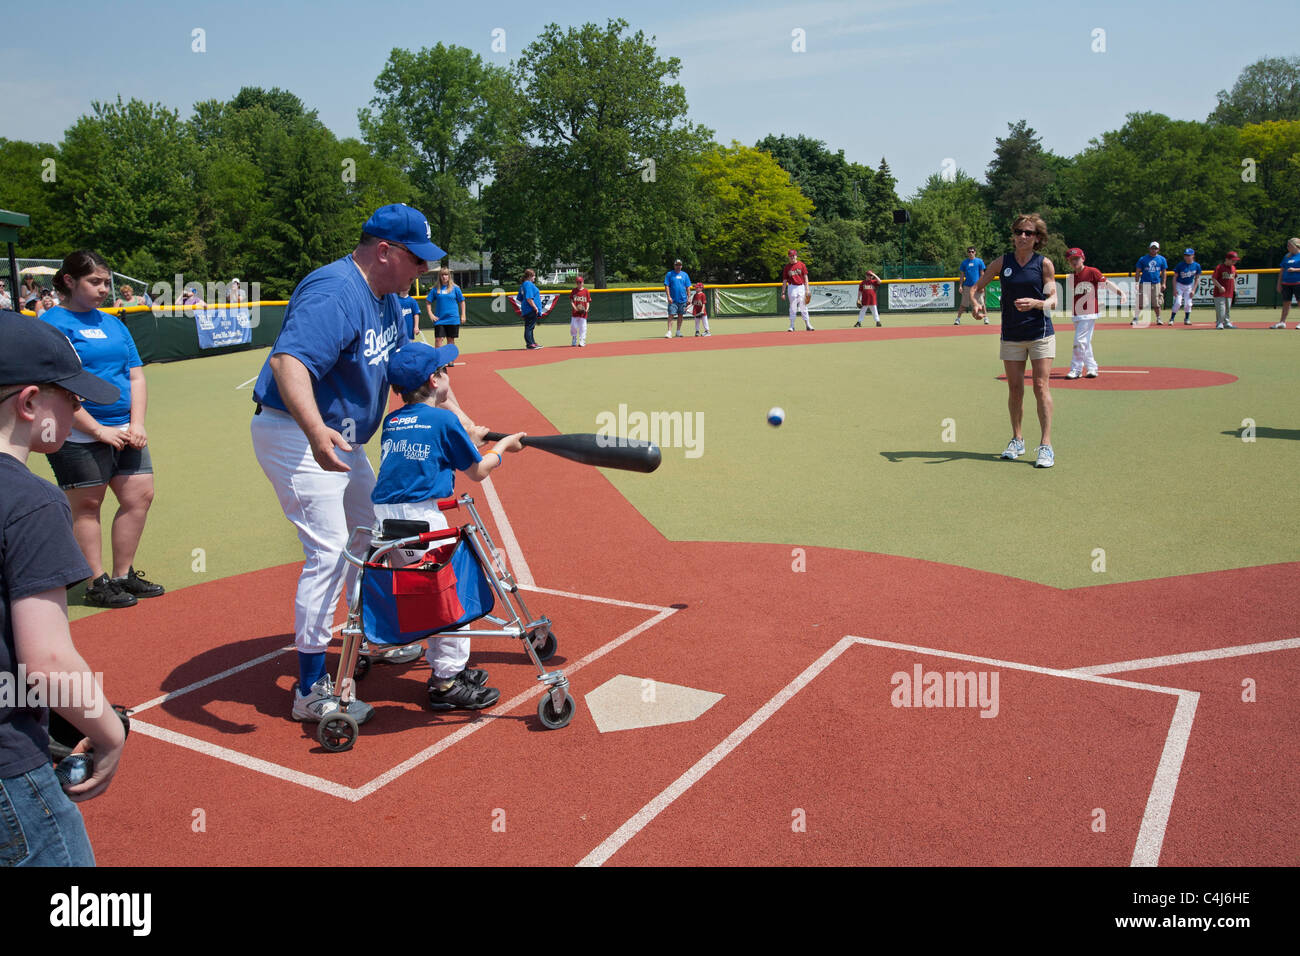 Children with Disabilities Play Baseball in the Miracle League - Stock Image